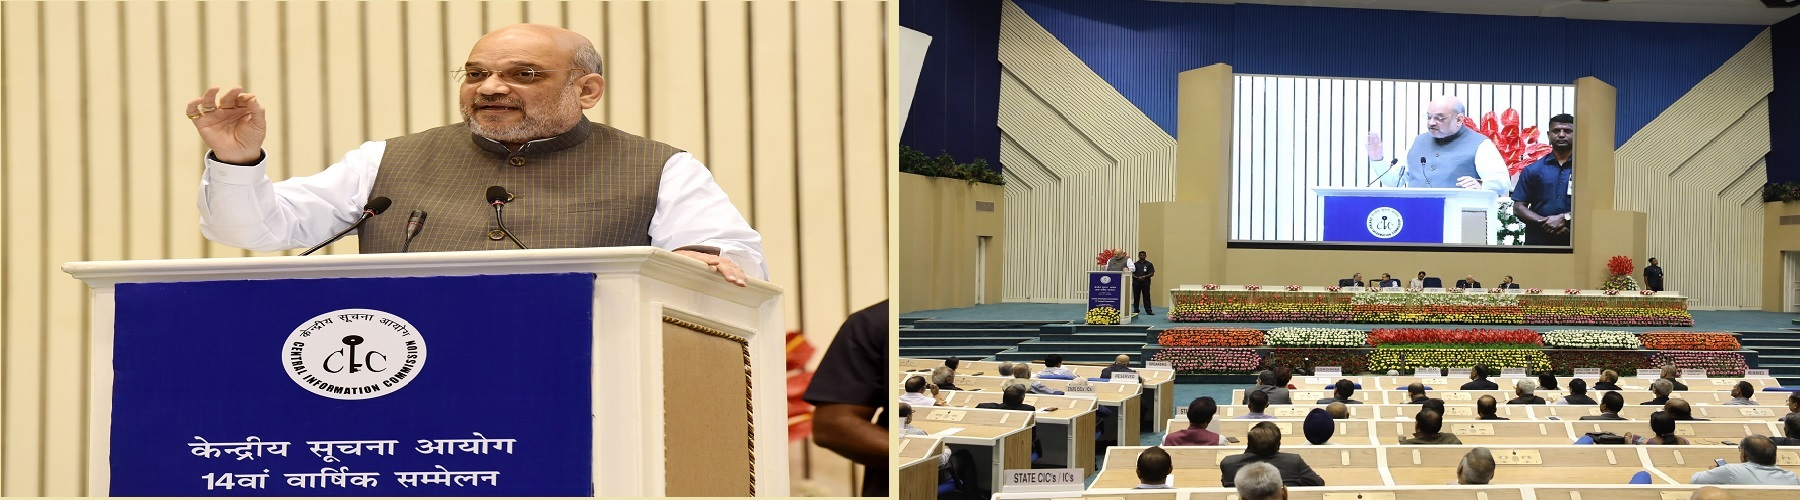 Union Minister for Home Affairs, Shri Amit Shah addressing the Inaugural session of the 14th Annual Convention of the Central Information Commission, in New Delhi on October 12, 2019.